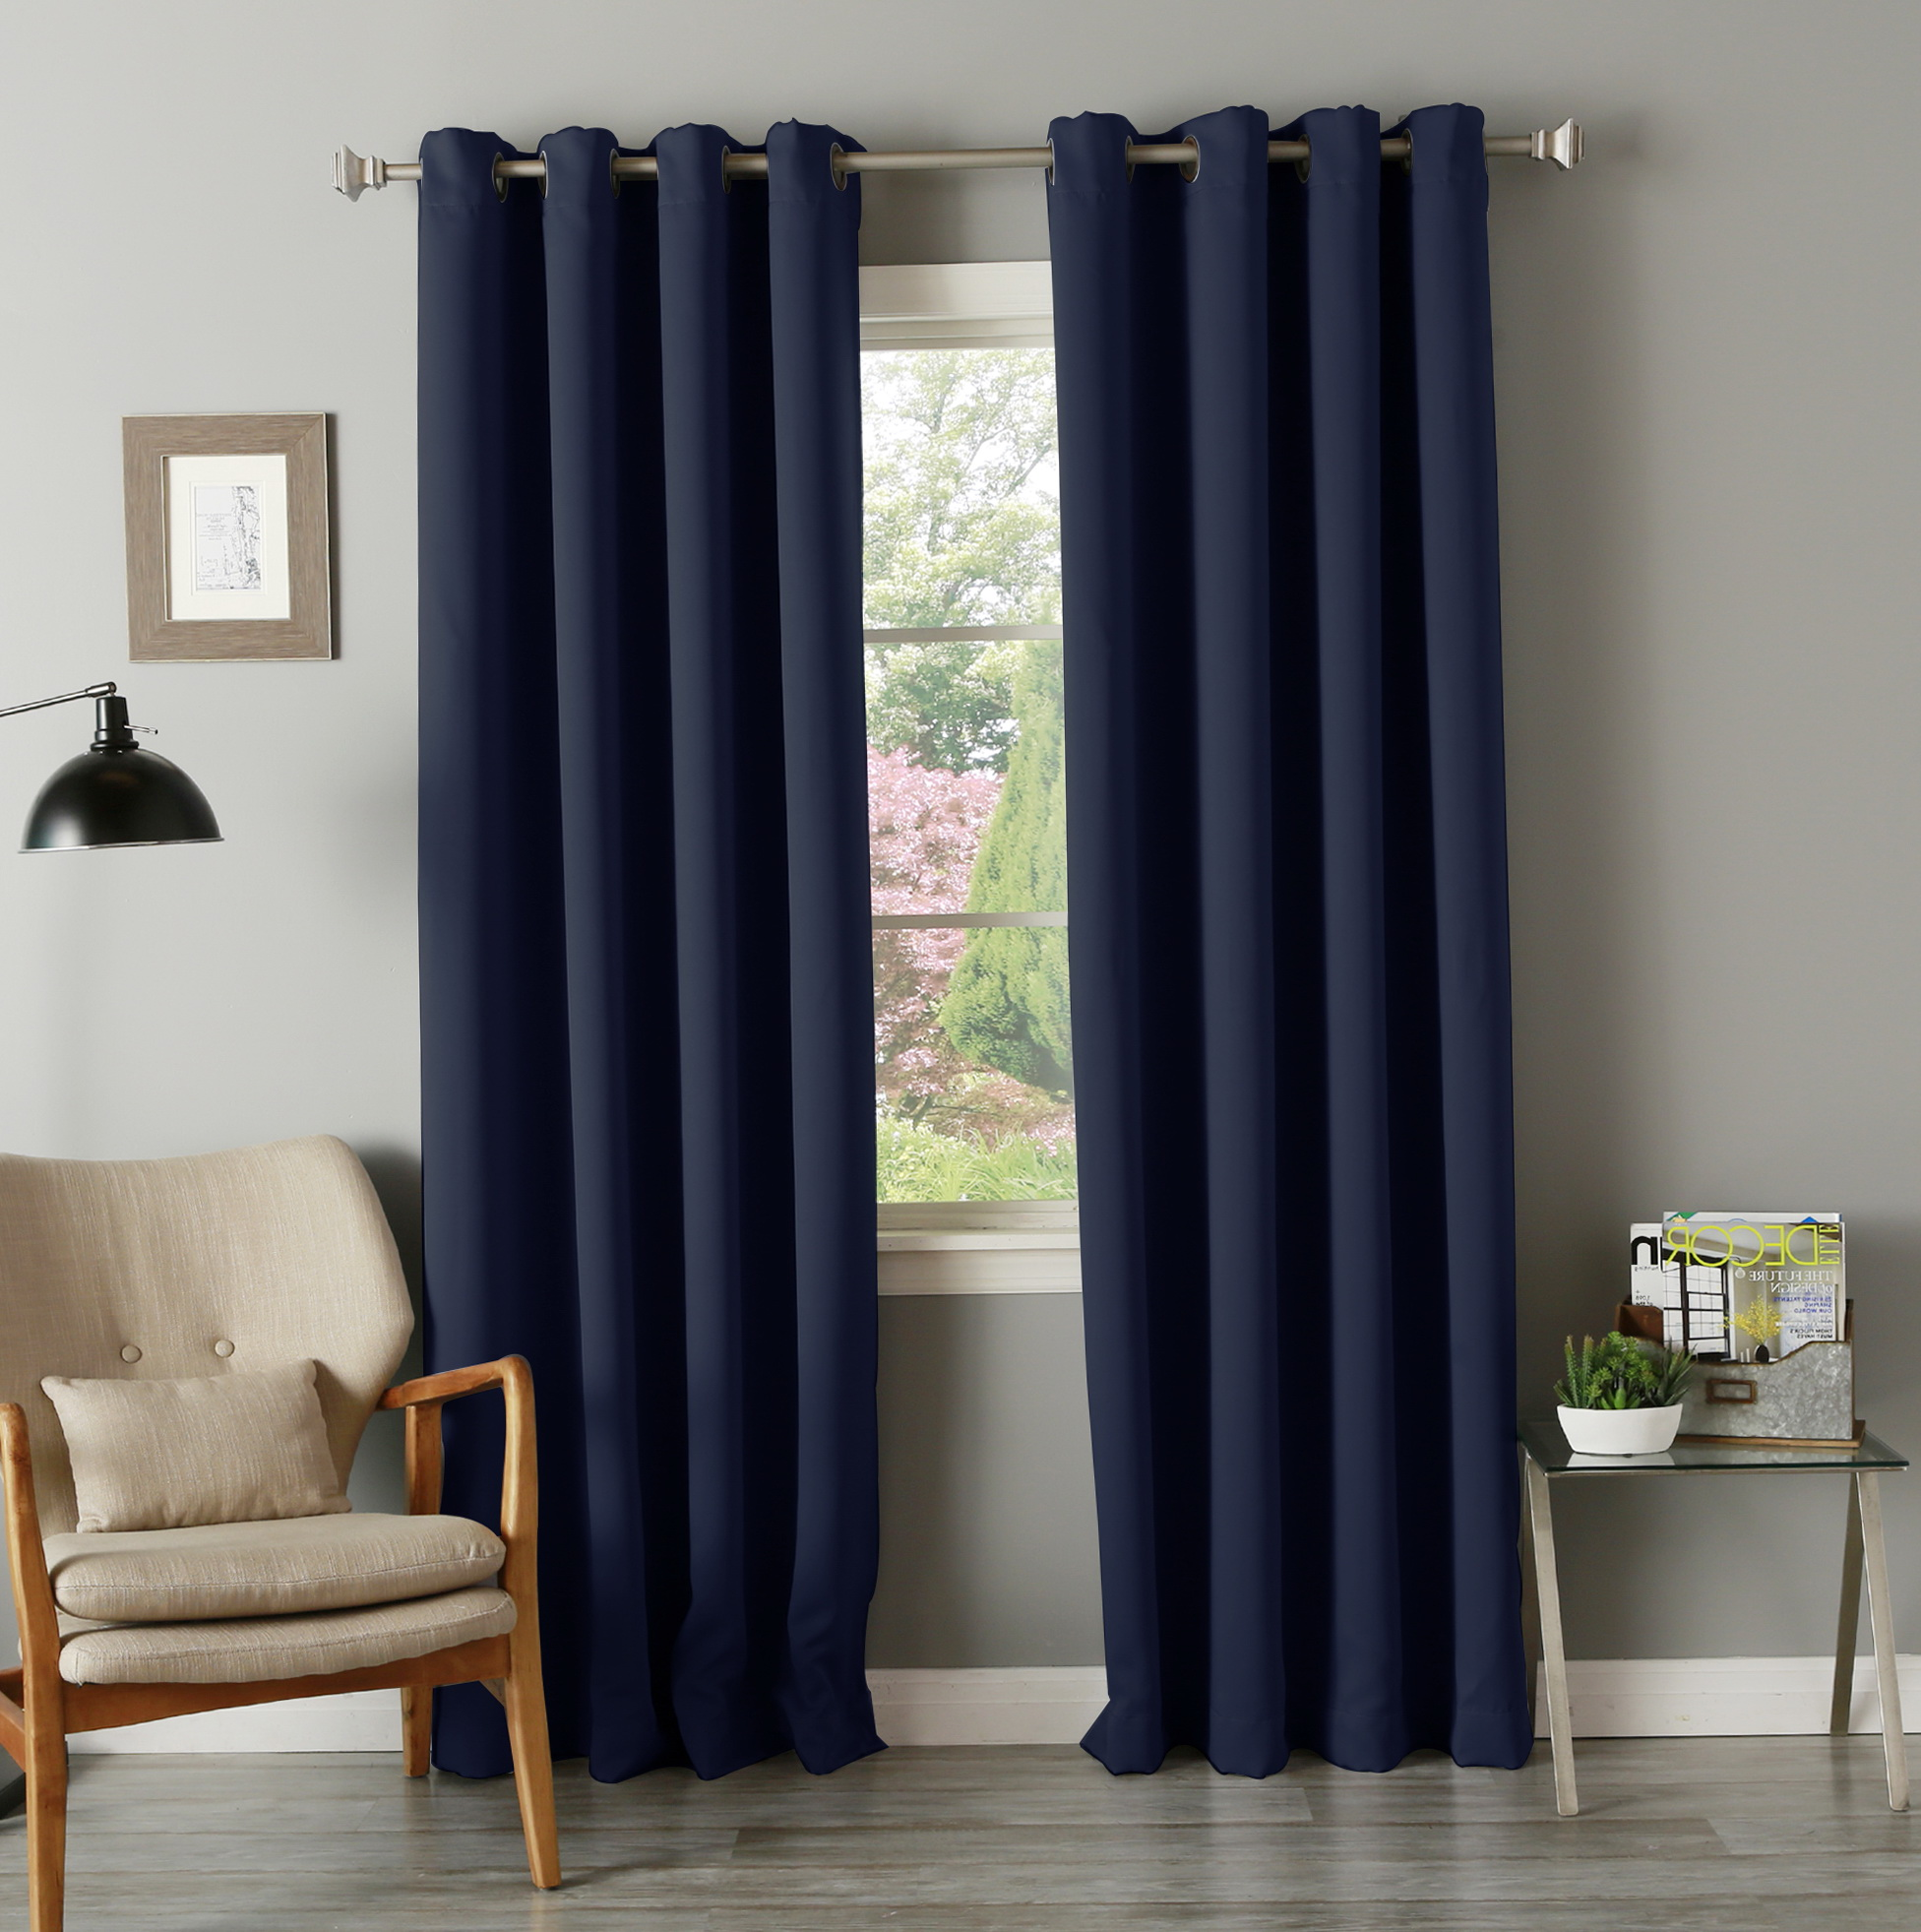 blackout com solar blue curtains eyelet royal check argos pleat radiofradio pencil